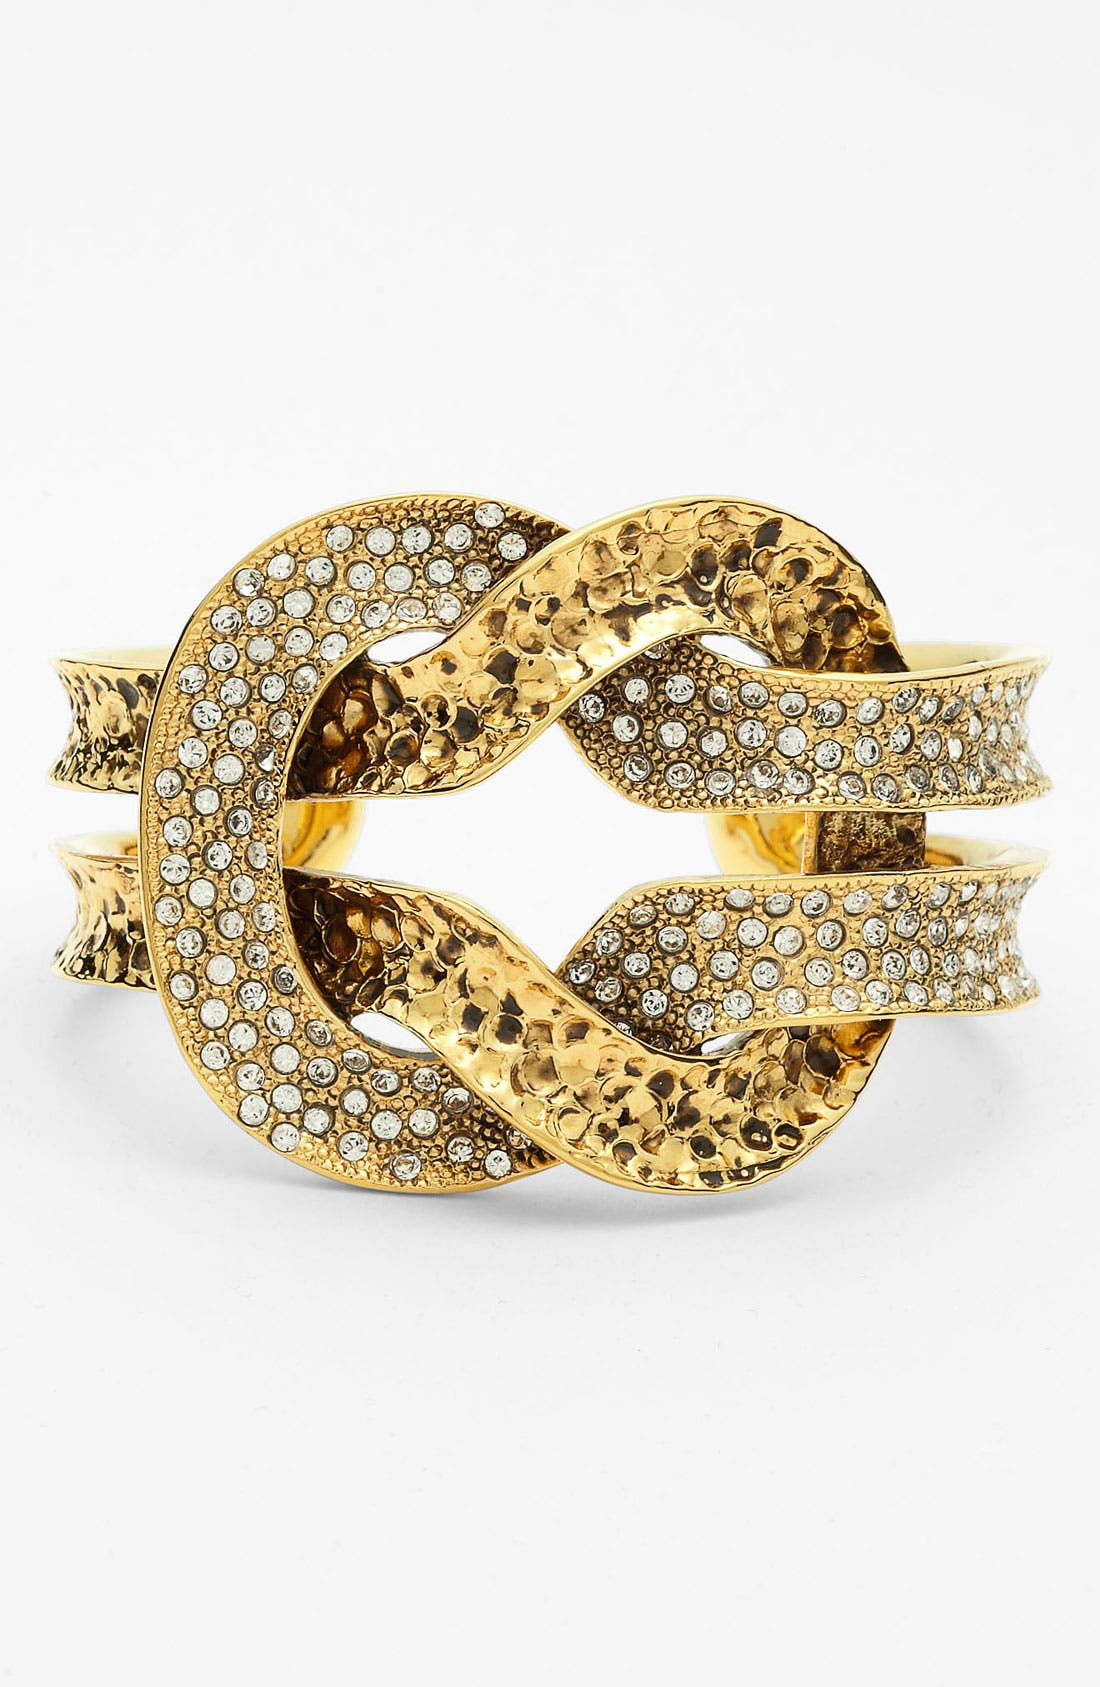 Main Image - St. John Collection Antique Gold Knot Cuff